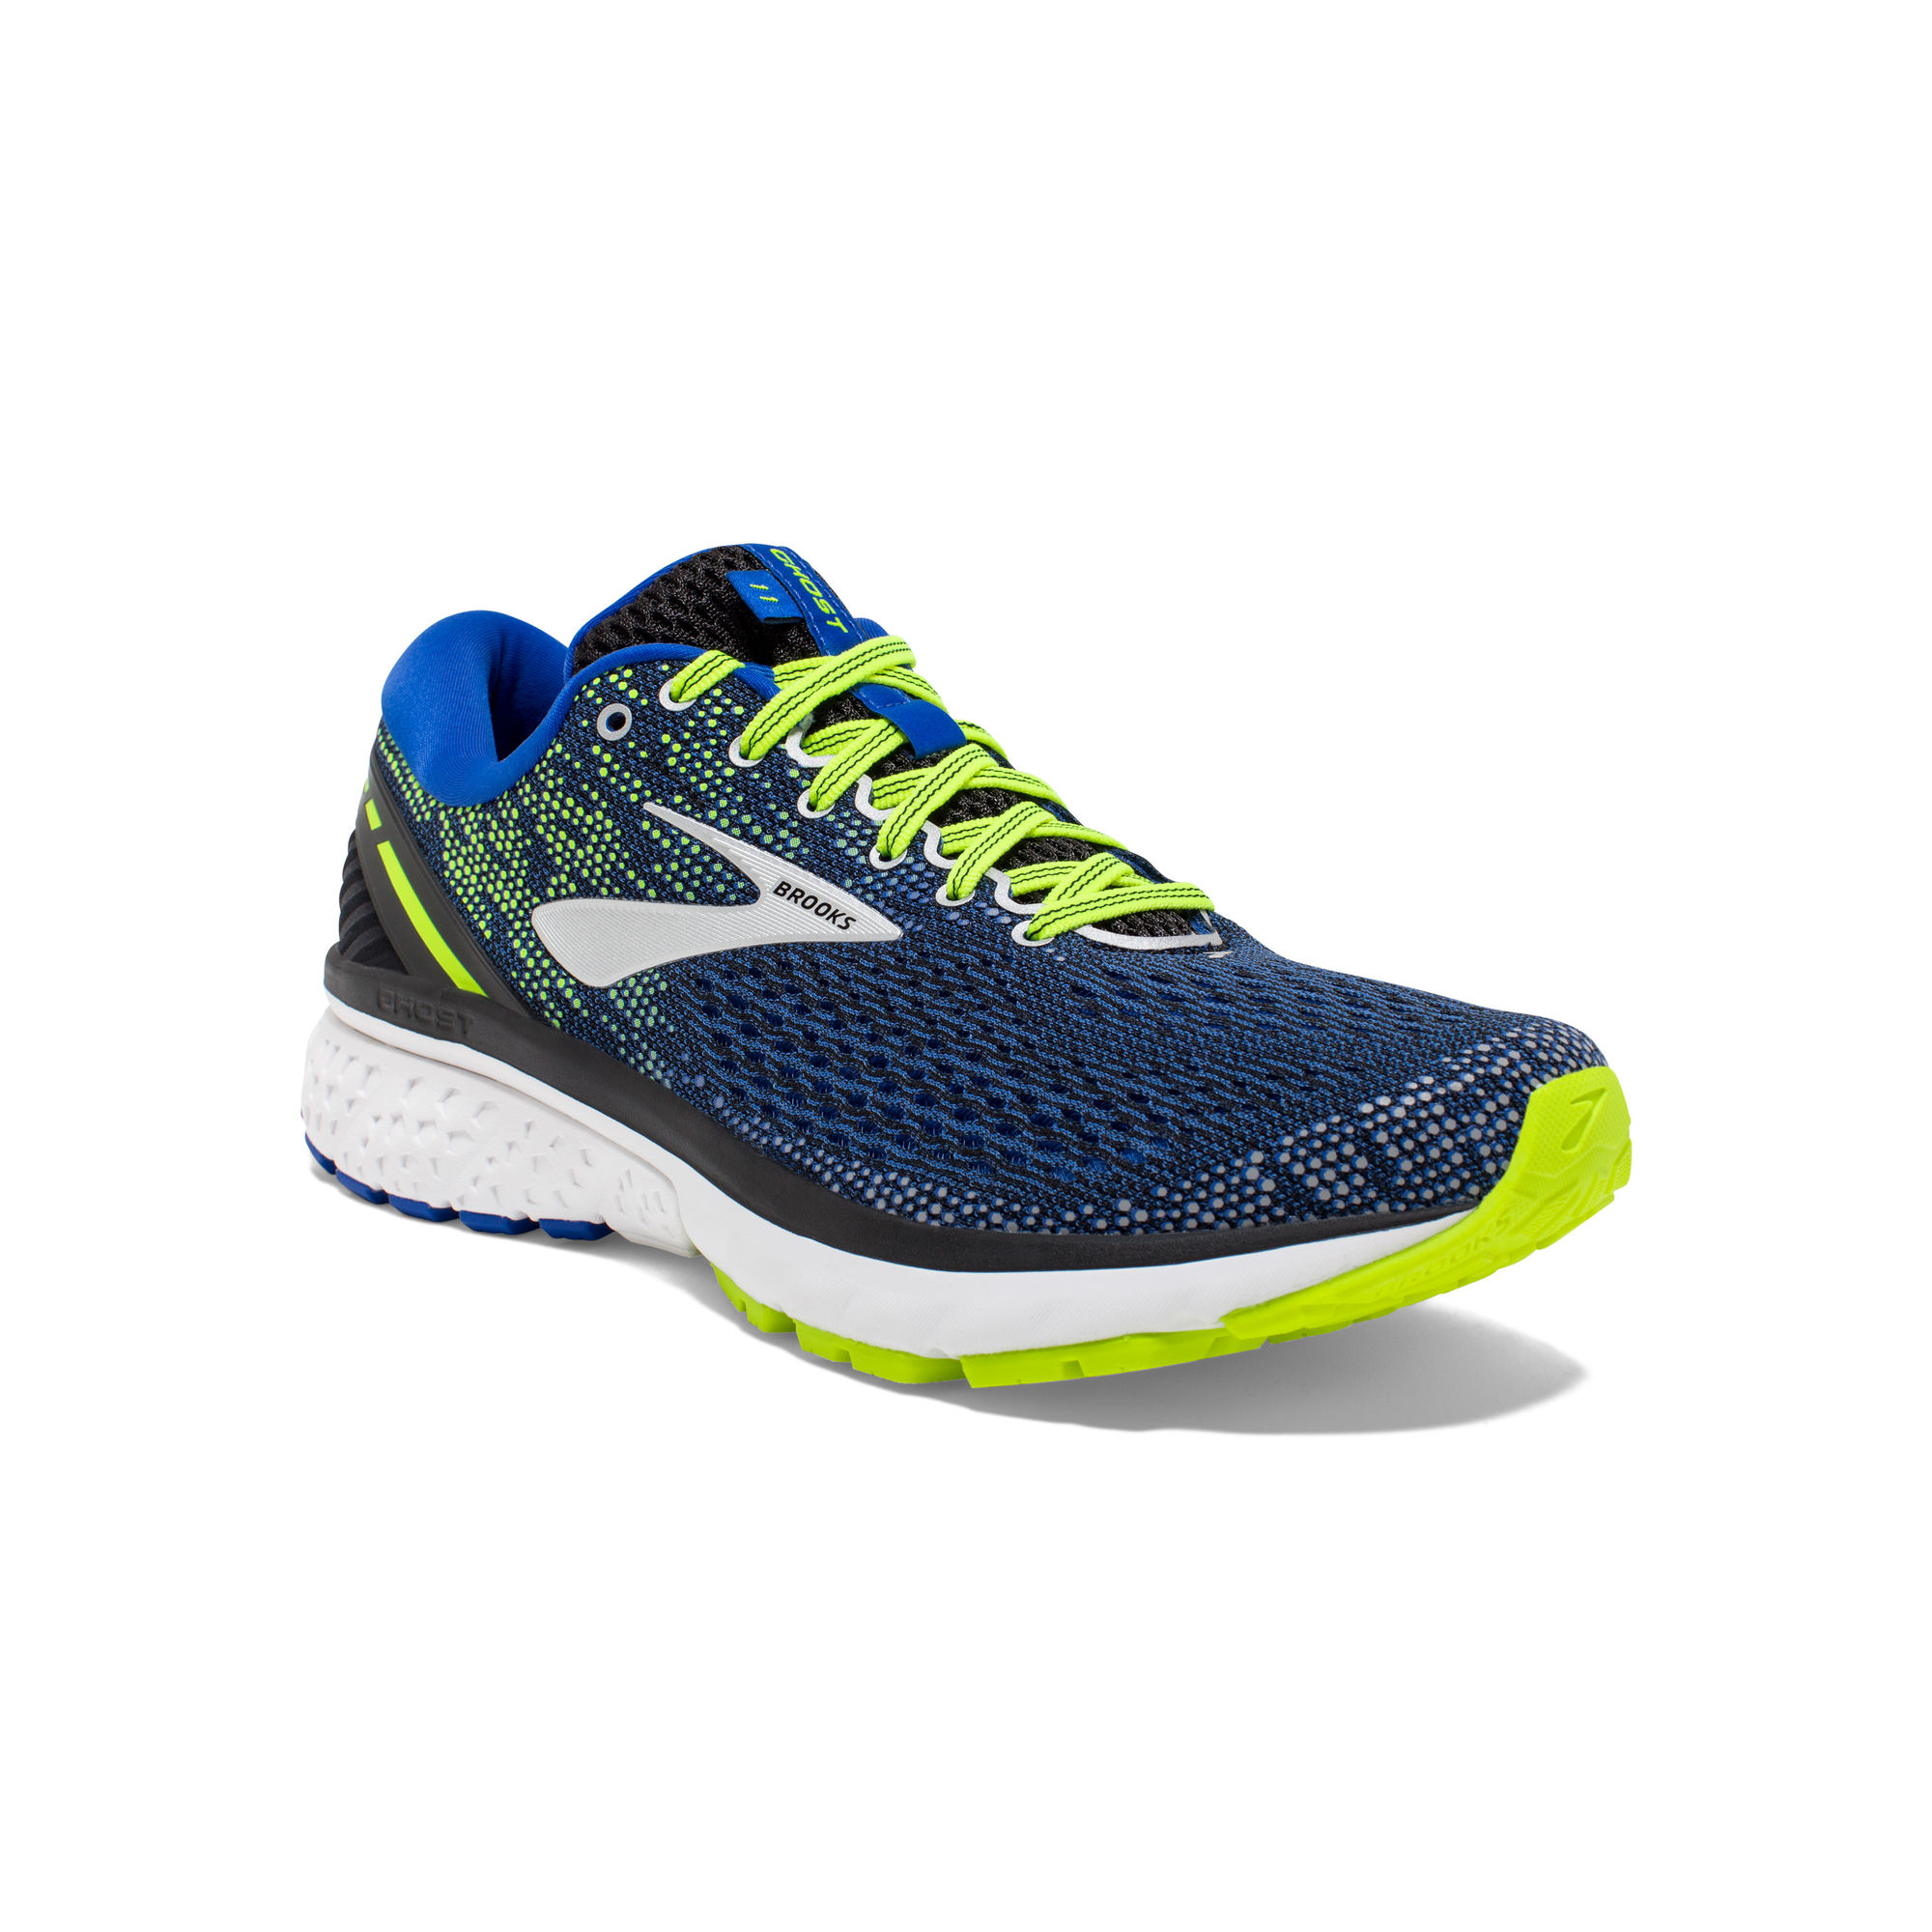 Brooks Ghost 11 in Blau Gelb